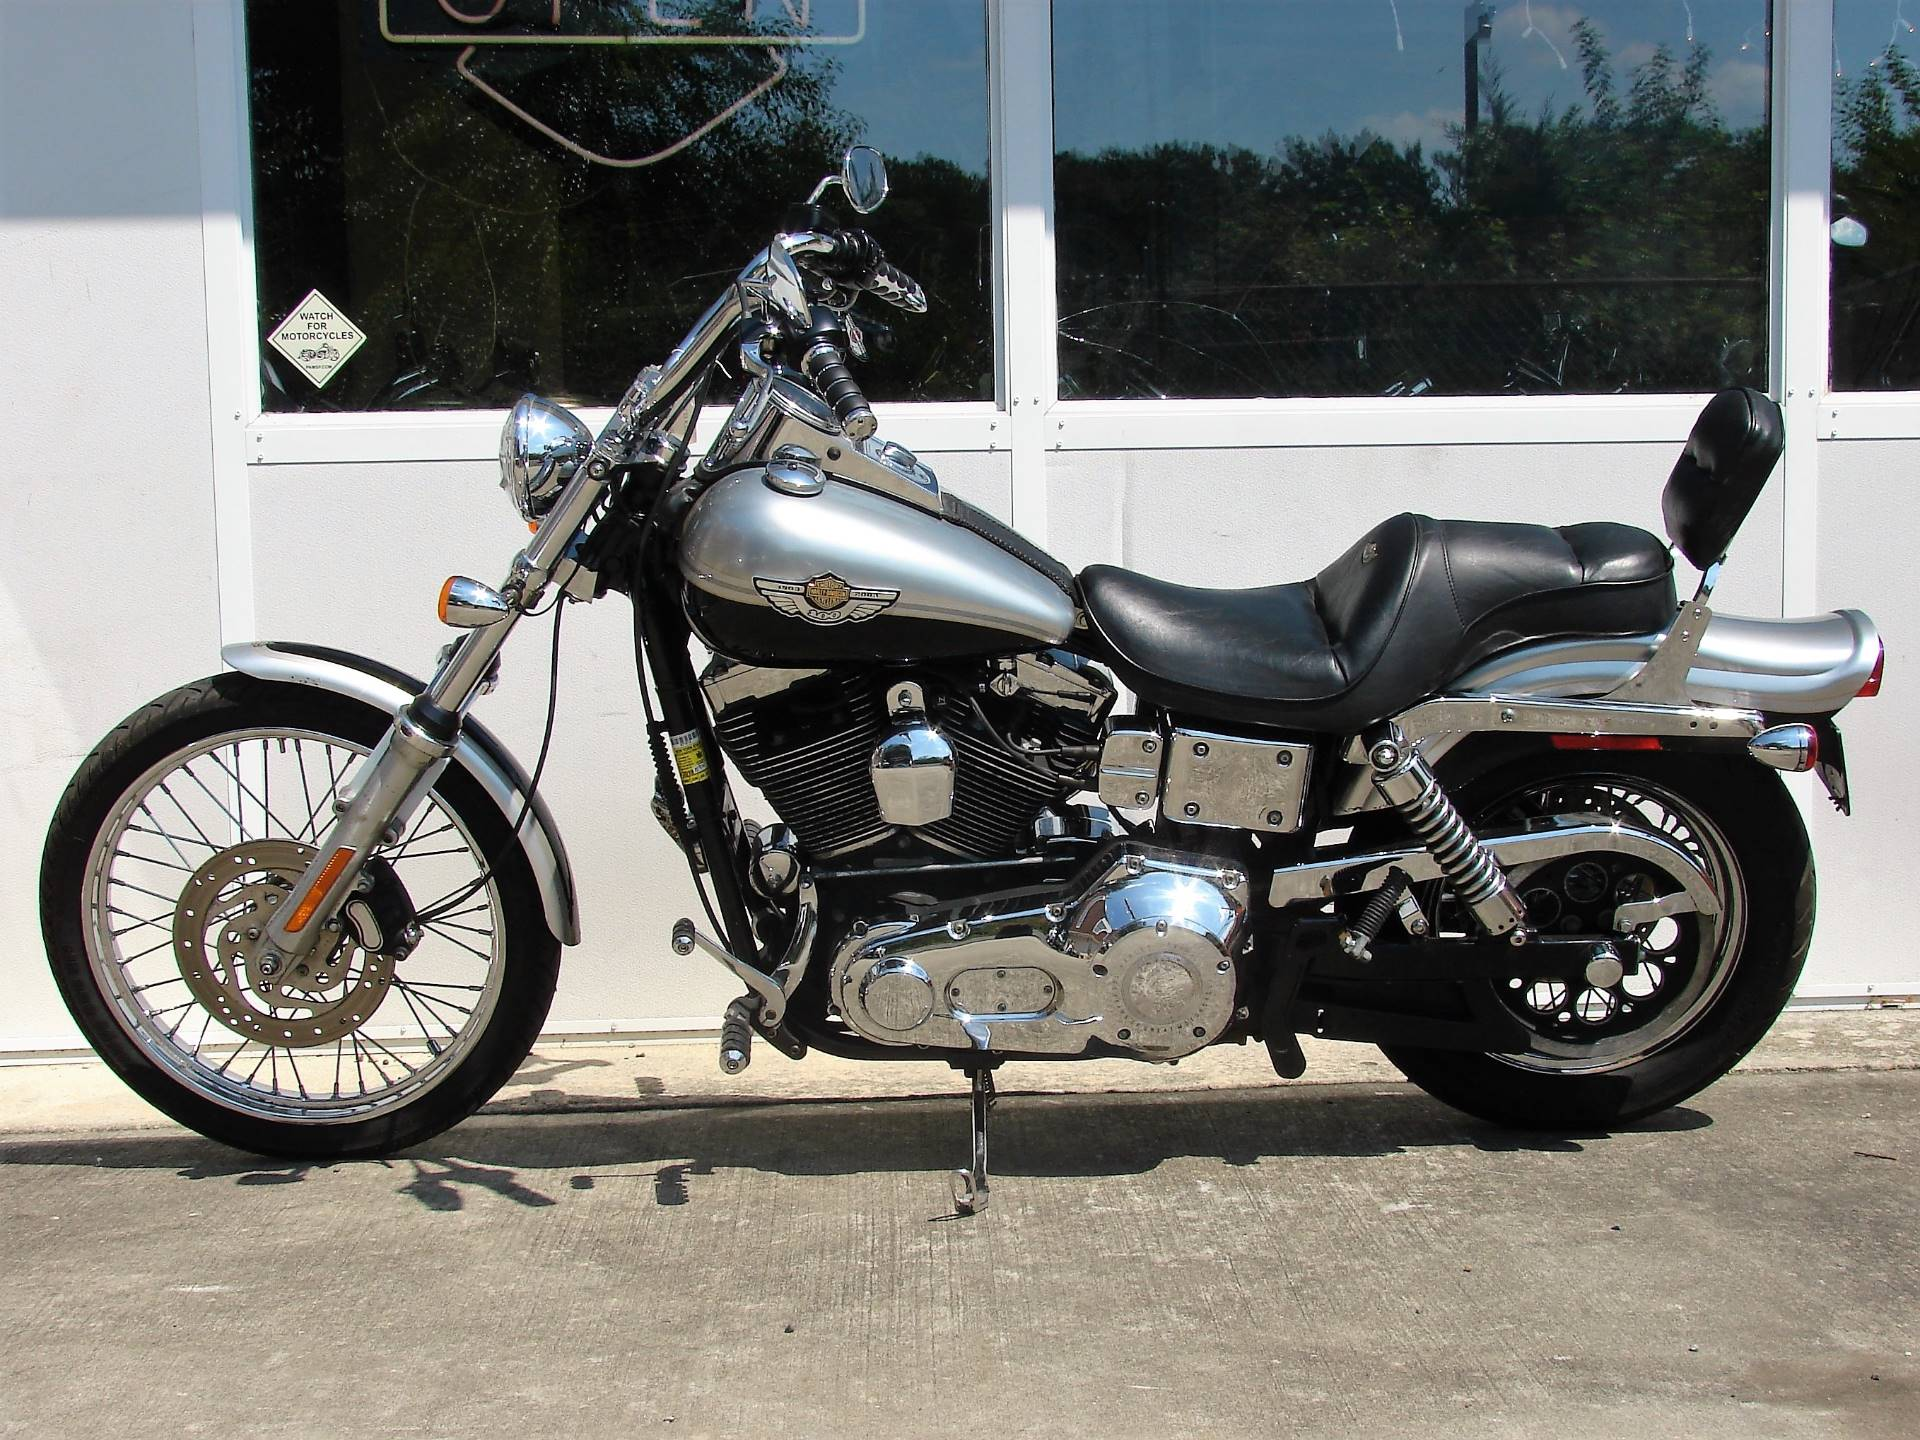 2003 Harley-Davidson FXDWG Dyna Wide Glide (Anniversary Edition) in Williamstown, New Jersey - Photo 13